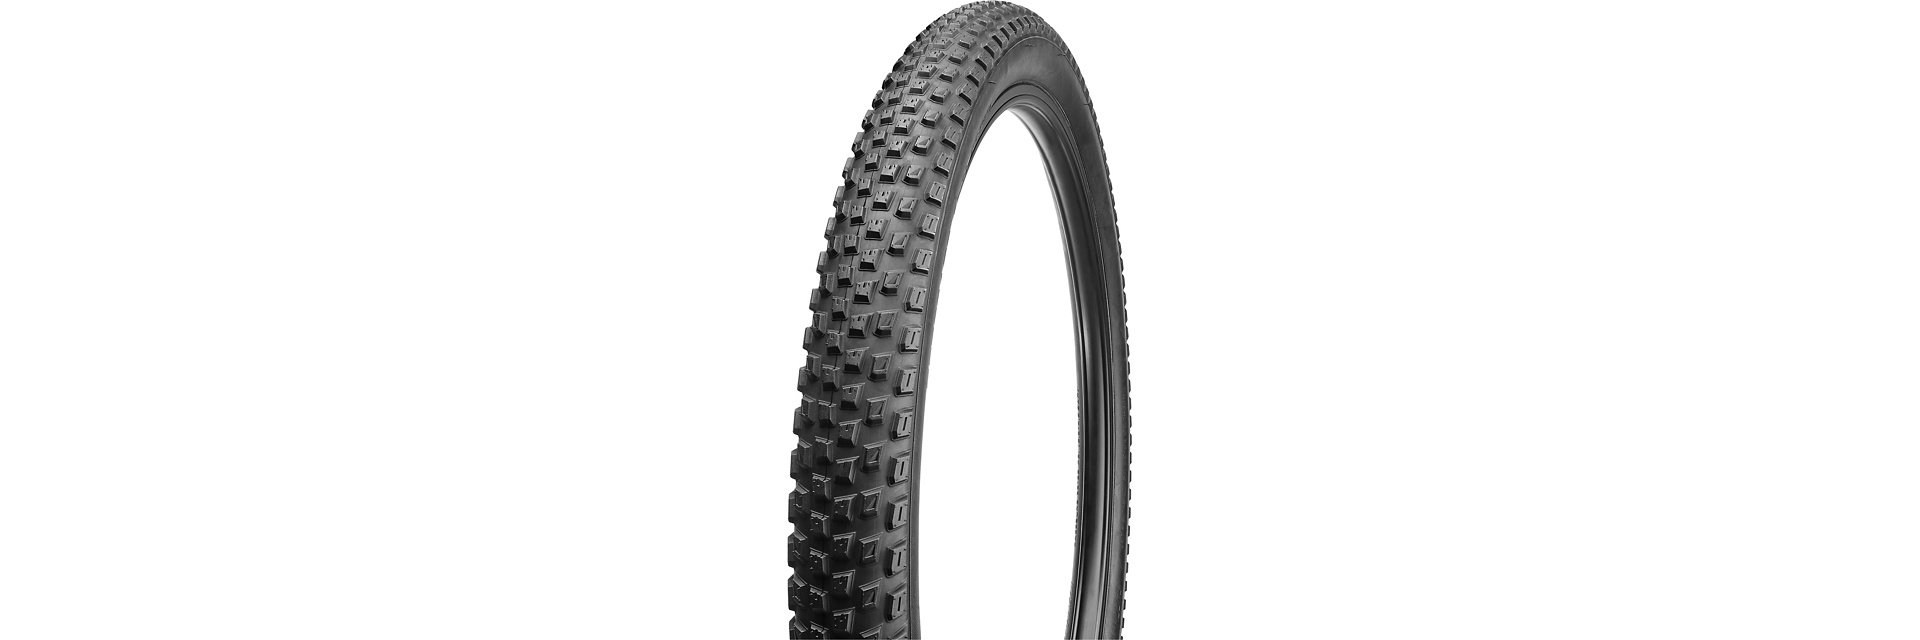 Specialized RENEGADE CONTROL 2BR TIRE 29X2.1